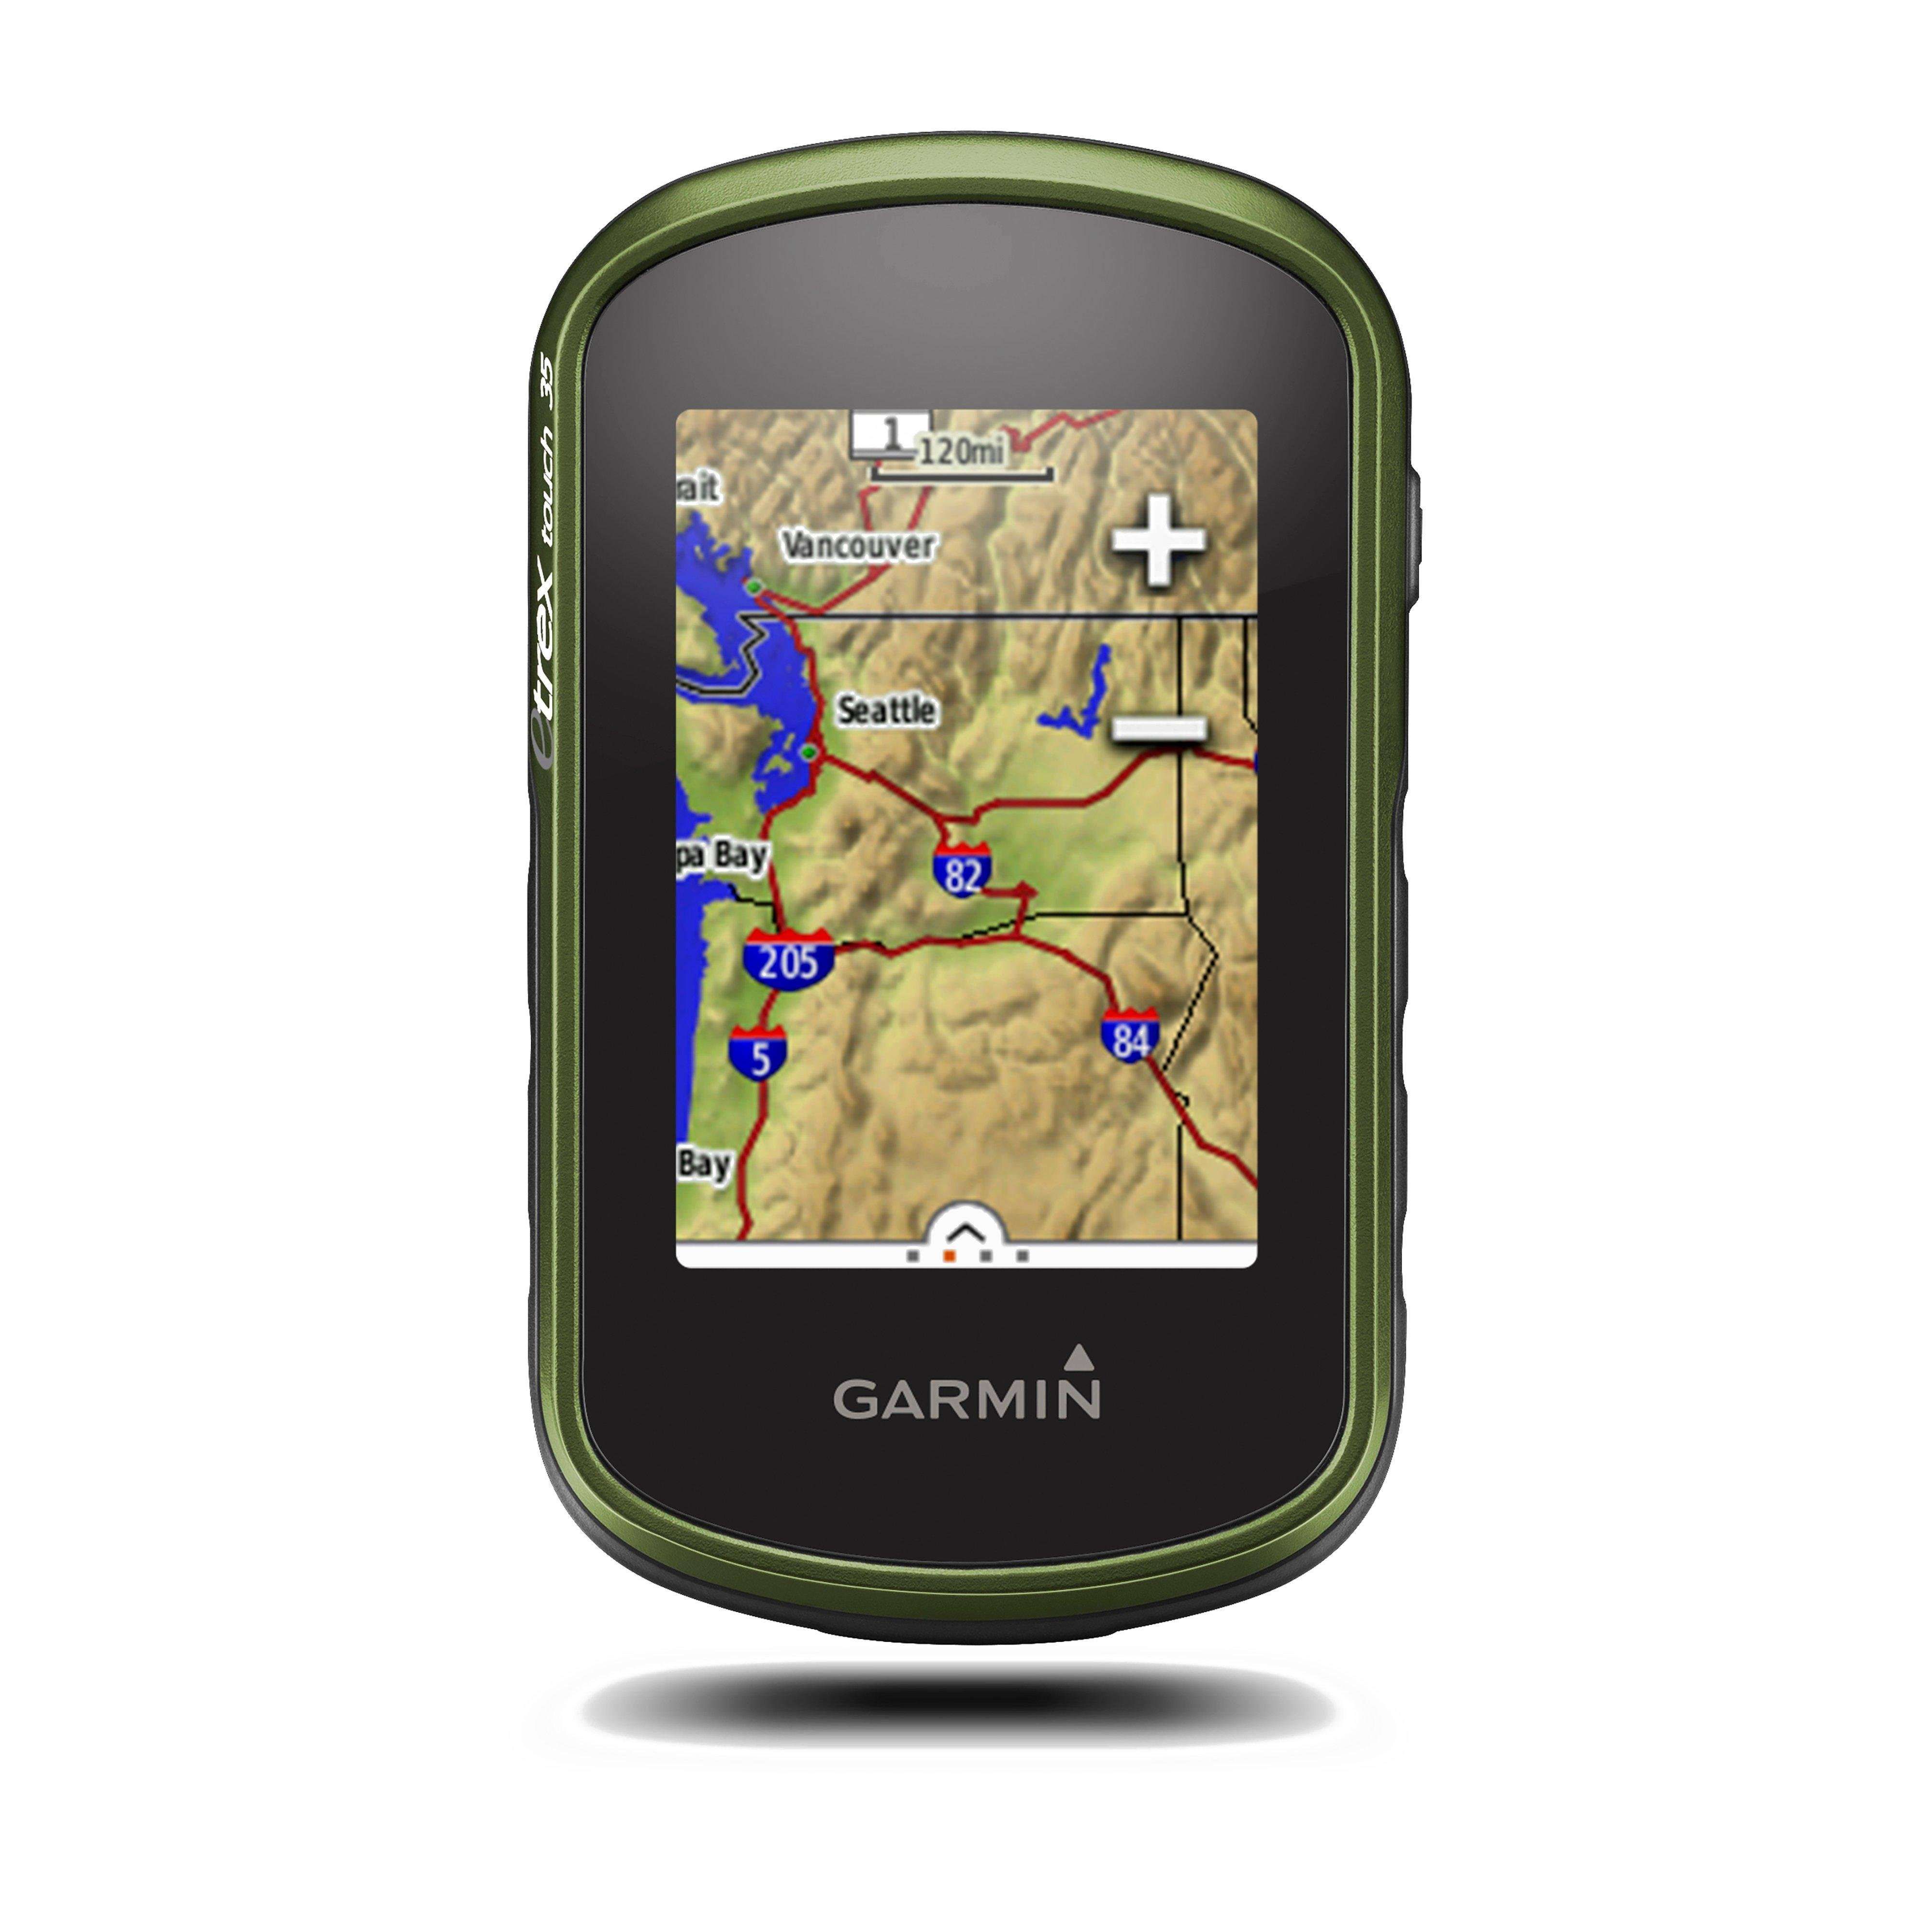 GARMIN eTrex® Touch 35 Discoverer Bundle (with GB 1:50K Map)